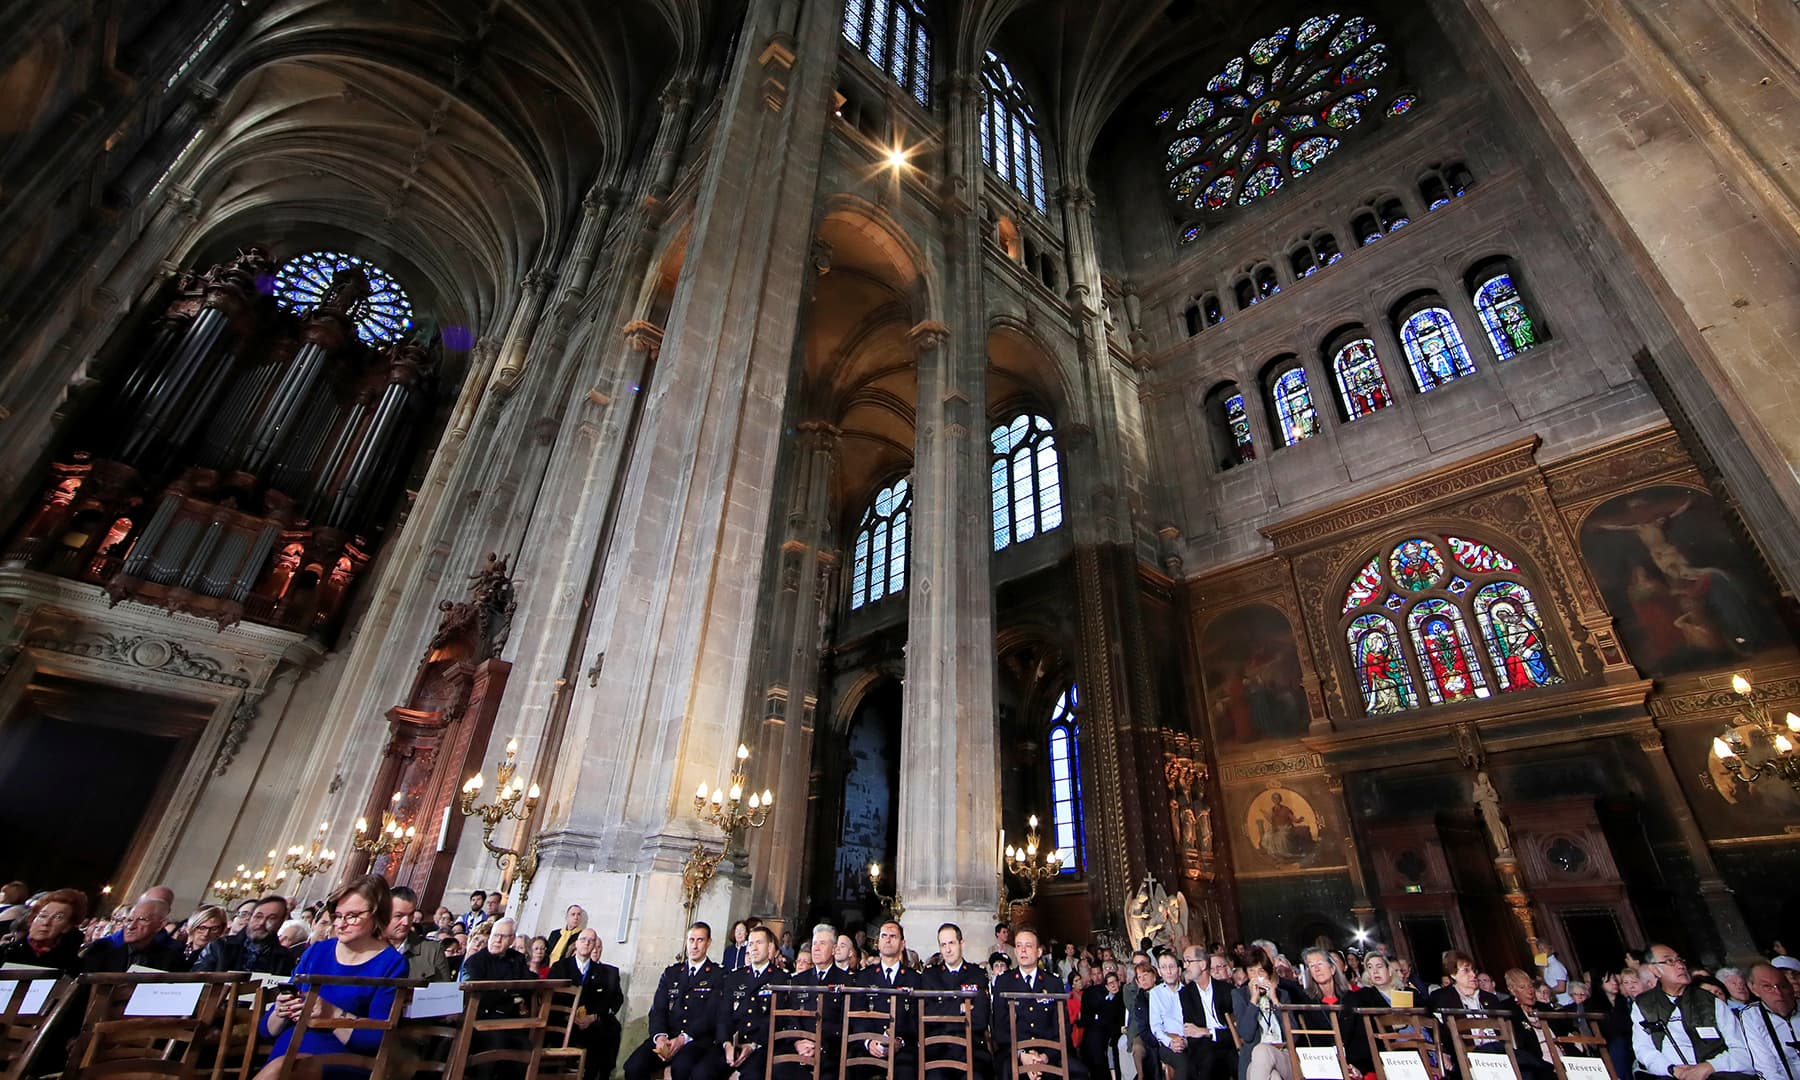 A general view before Easter Sunday Mass at Saint-Eustache, days after a massive fire devastated large parts of the structure of the gothic Notre-Dame Cathedral, in Paris. — Reuters